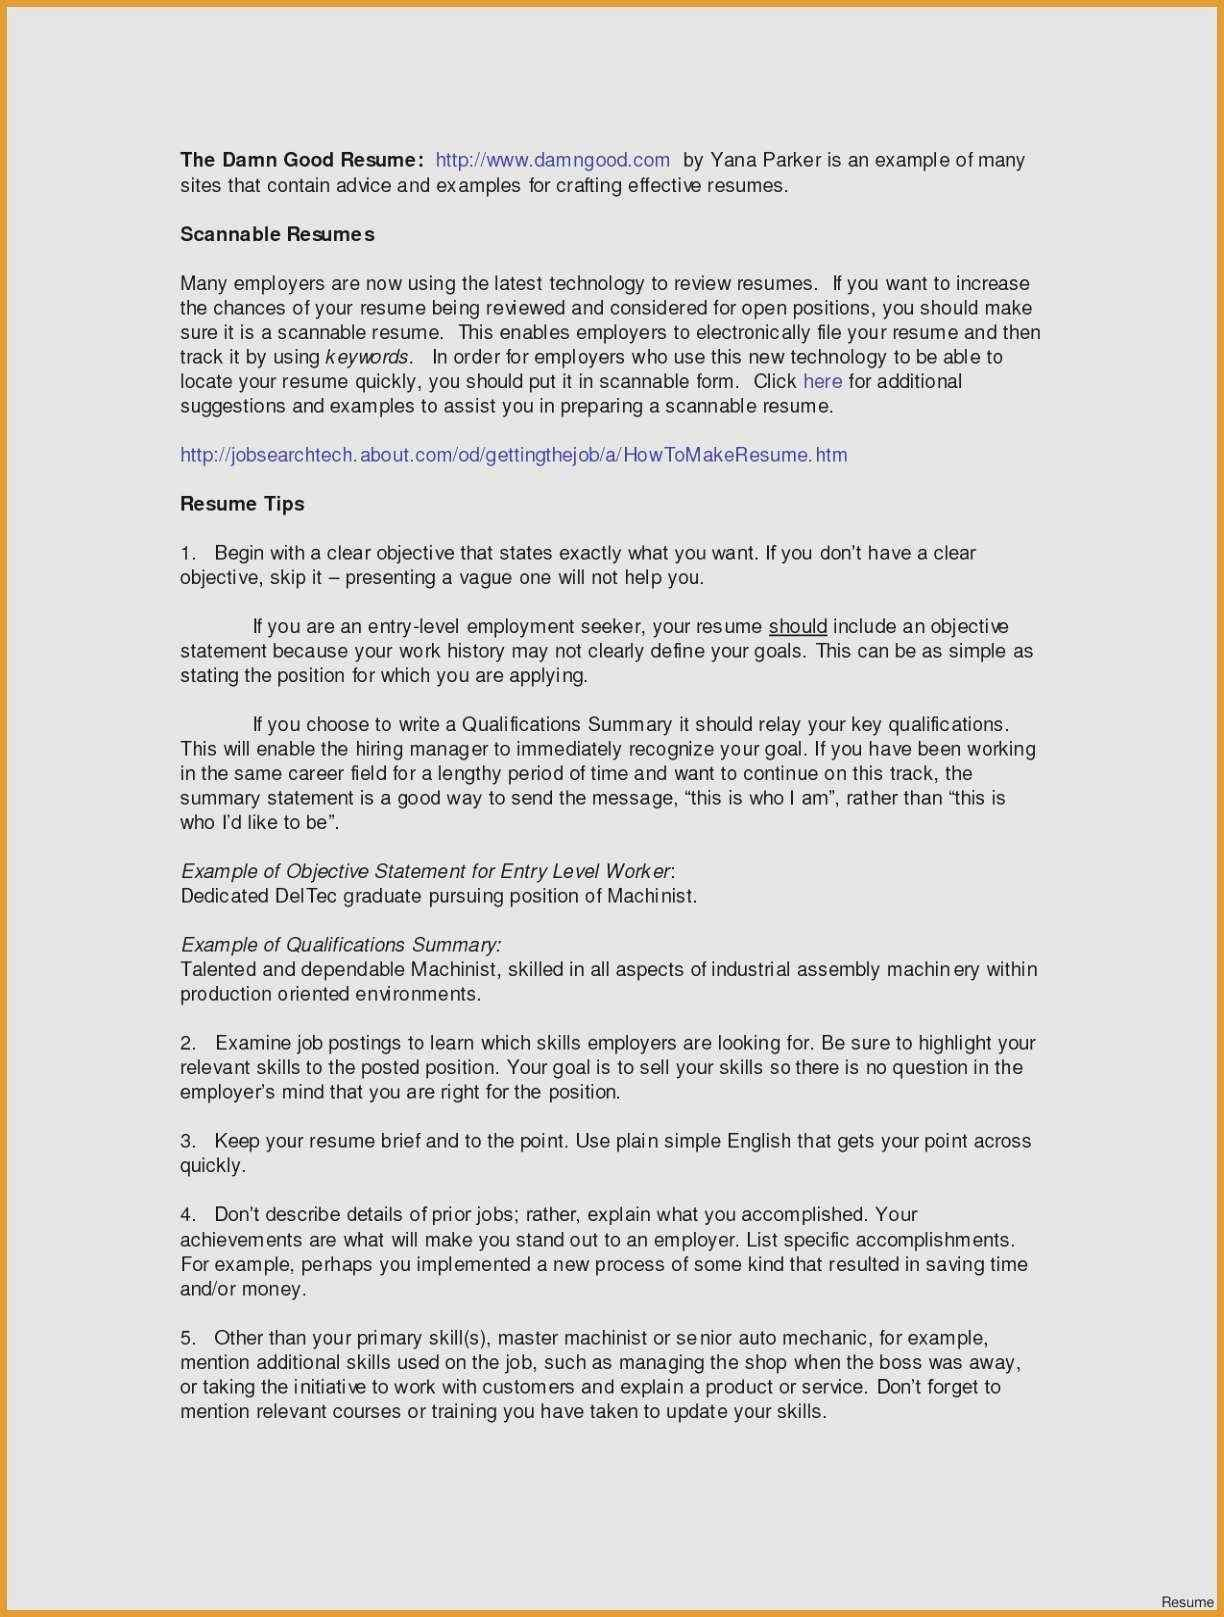 Career Change Objective Statements - Career Change Resume Objective Statement Examples New Career Change